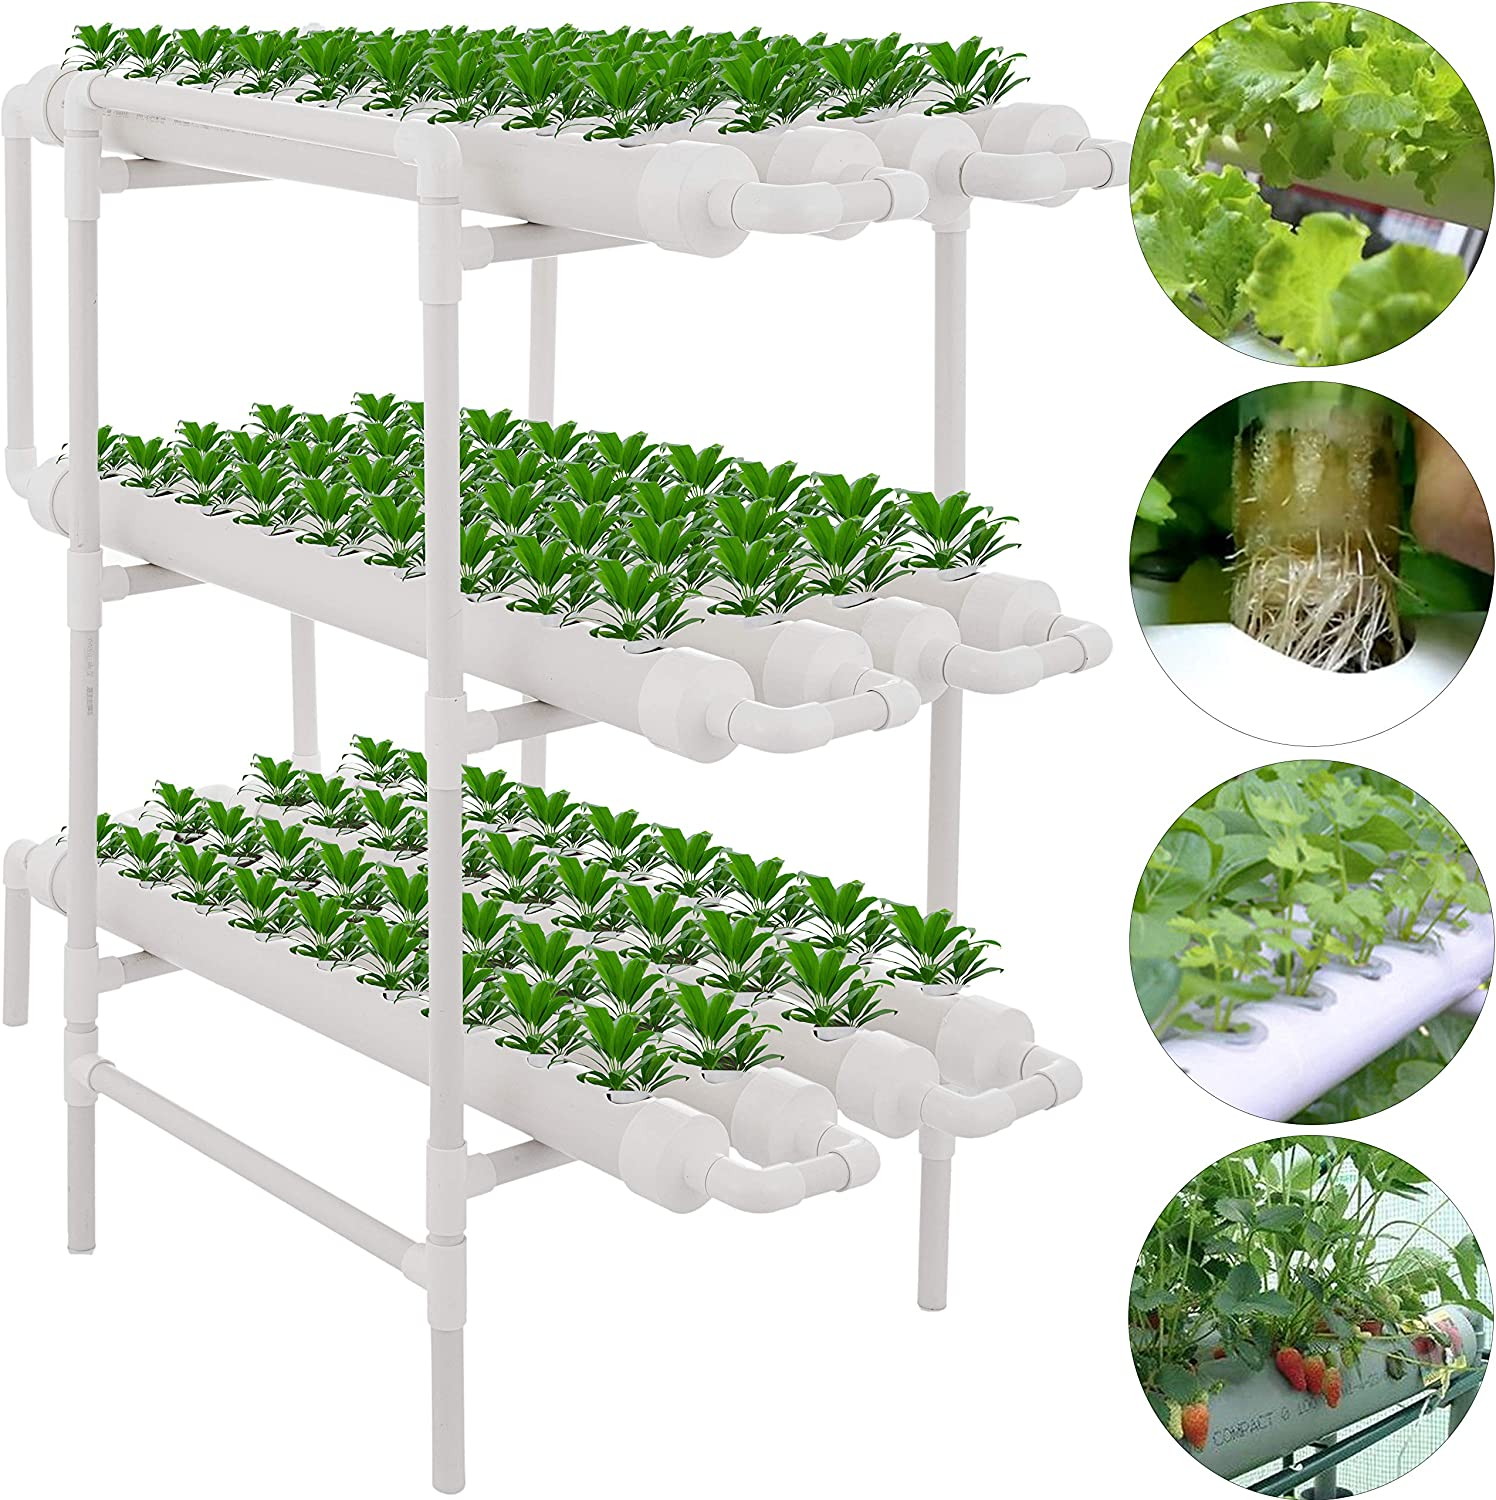 DreamJoy 3 Layers 108 Plant Sites Hydroponic Site Grow Kit 12 Pipes Hydroponic Growing System Water Culture Garden Plant System for Leafy Vegetables Lettuce Herb Celery